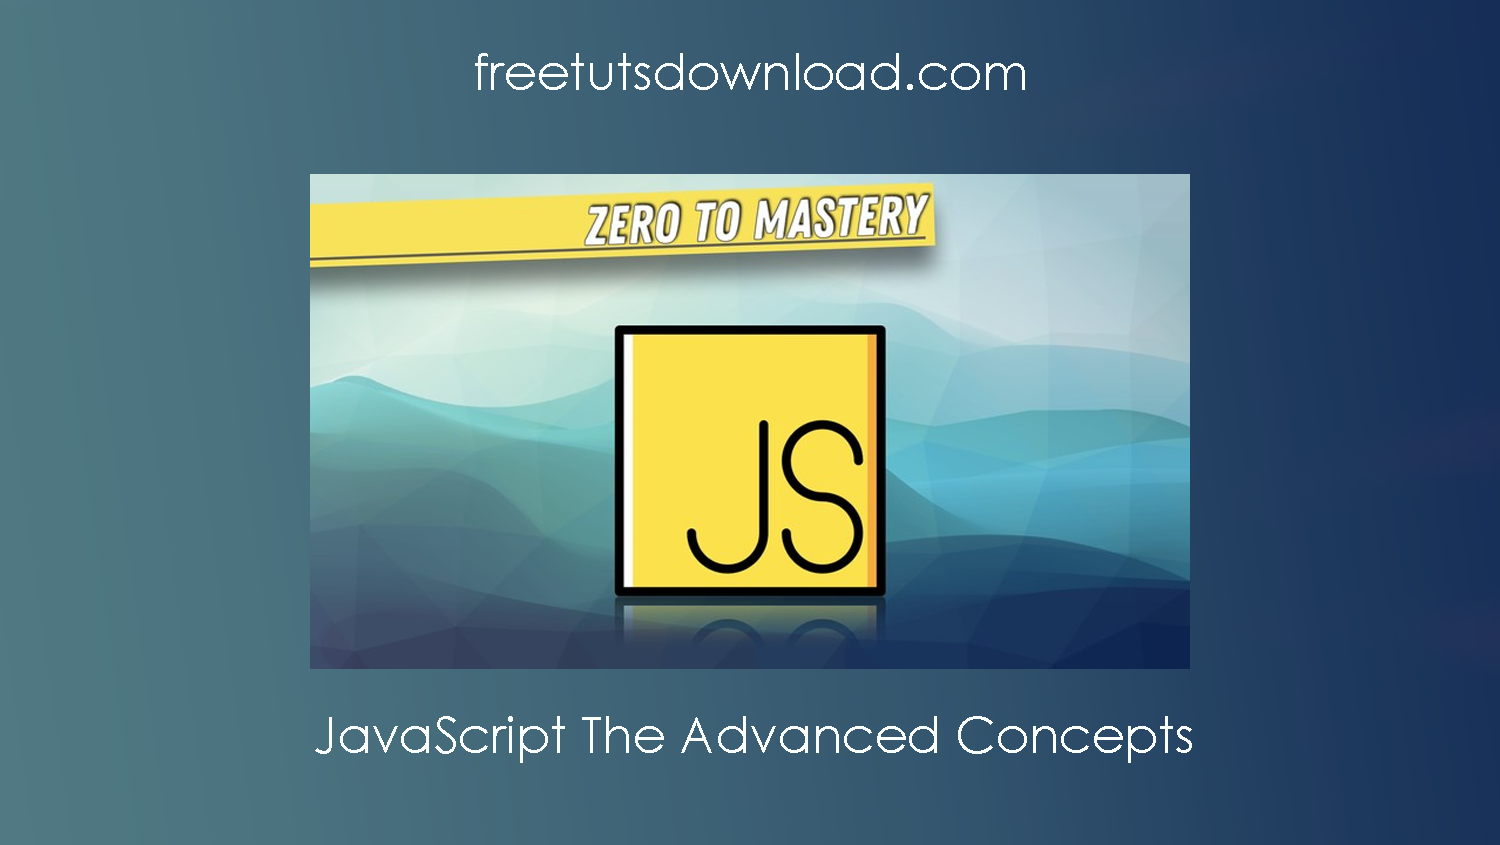 JavaScript The Advanced Concepts Free Download